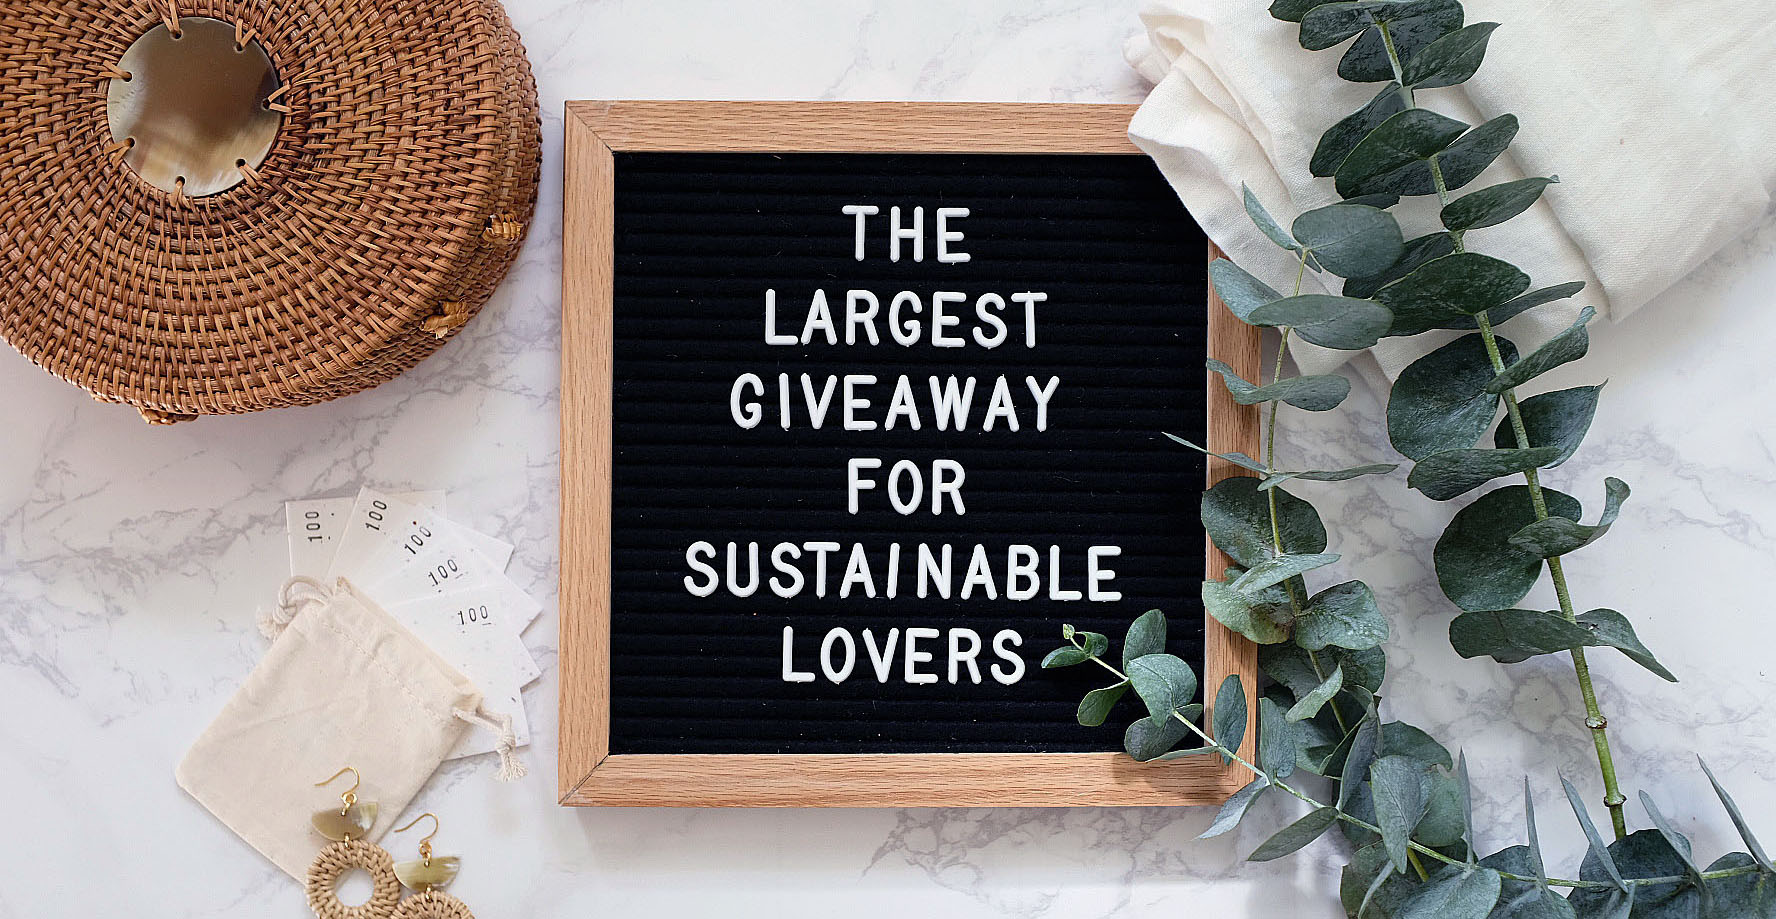 the largest sustainable giveaway